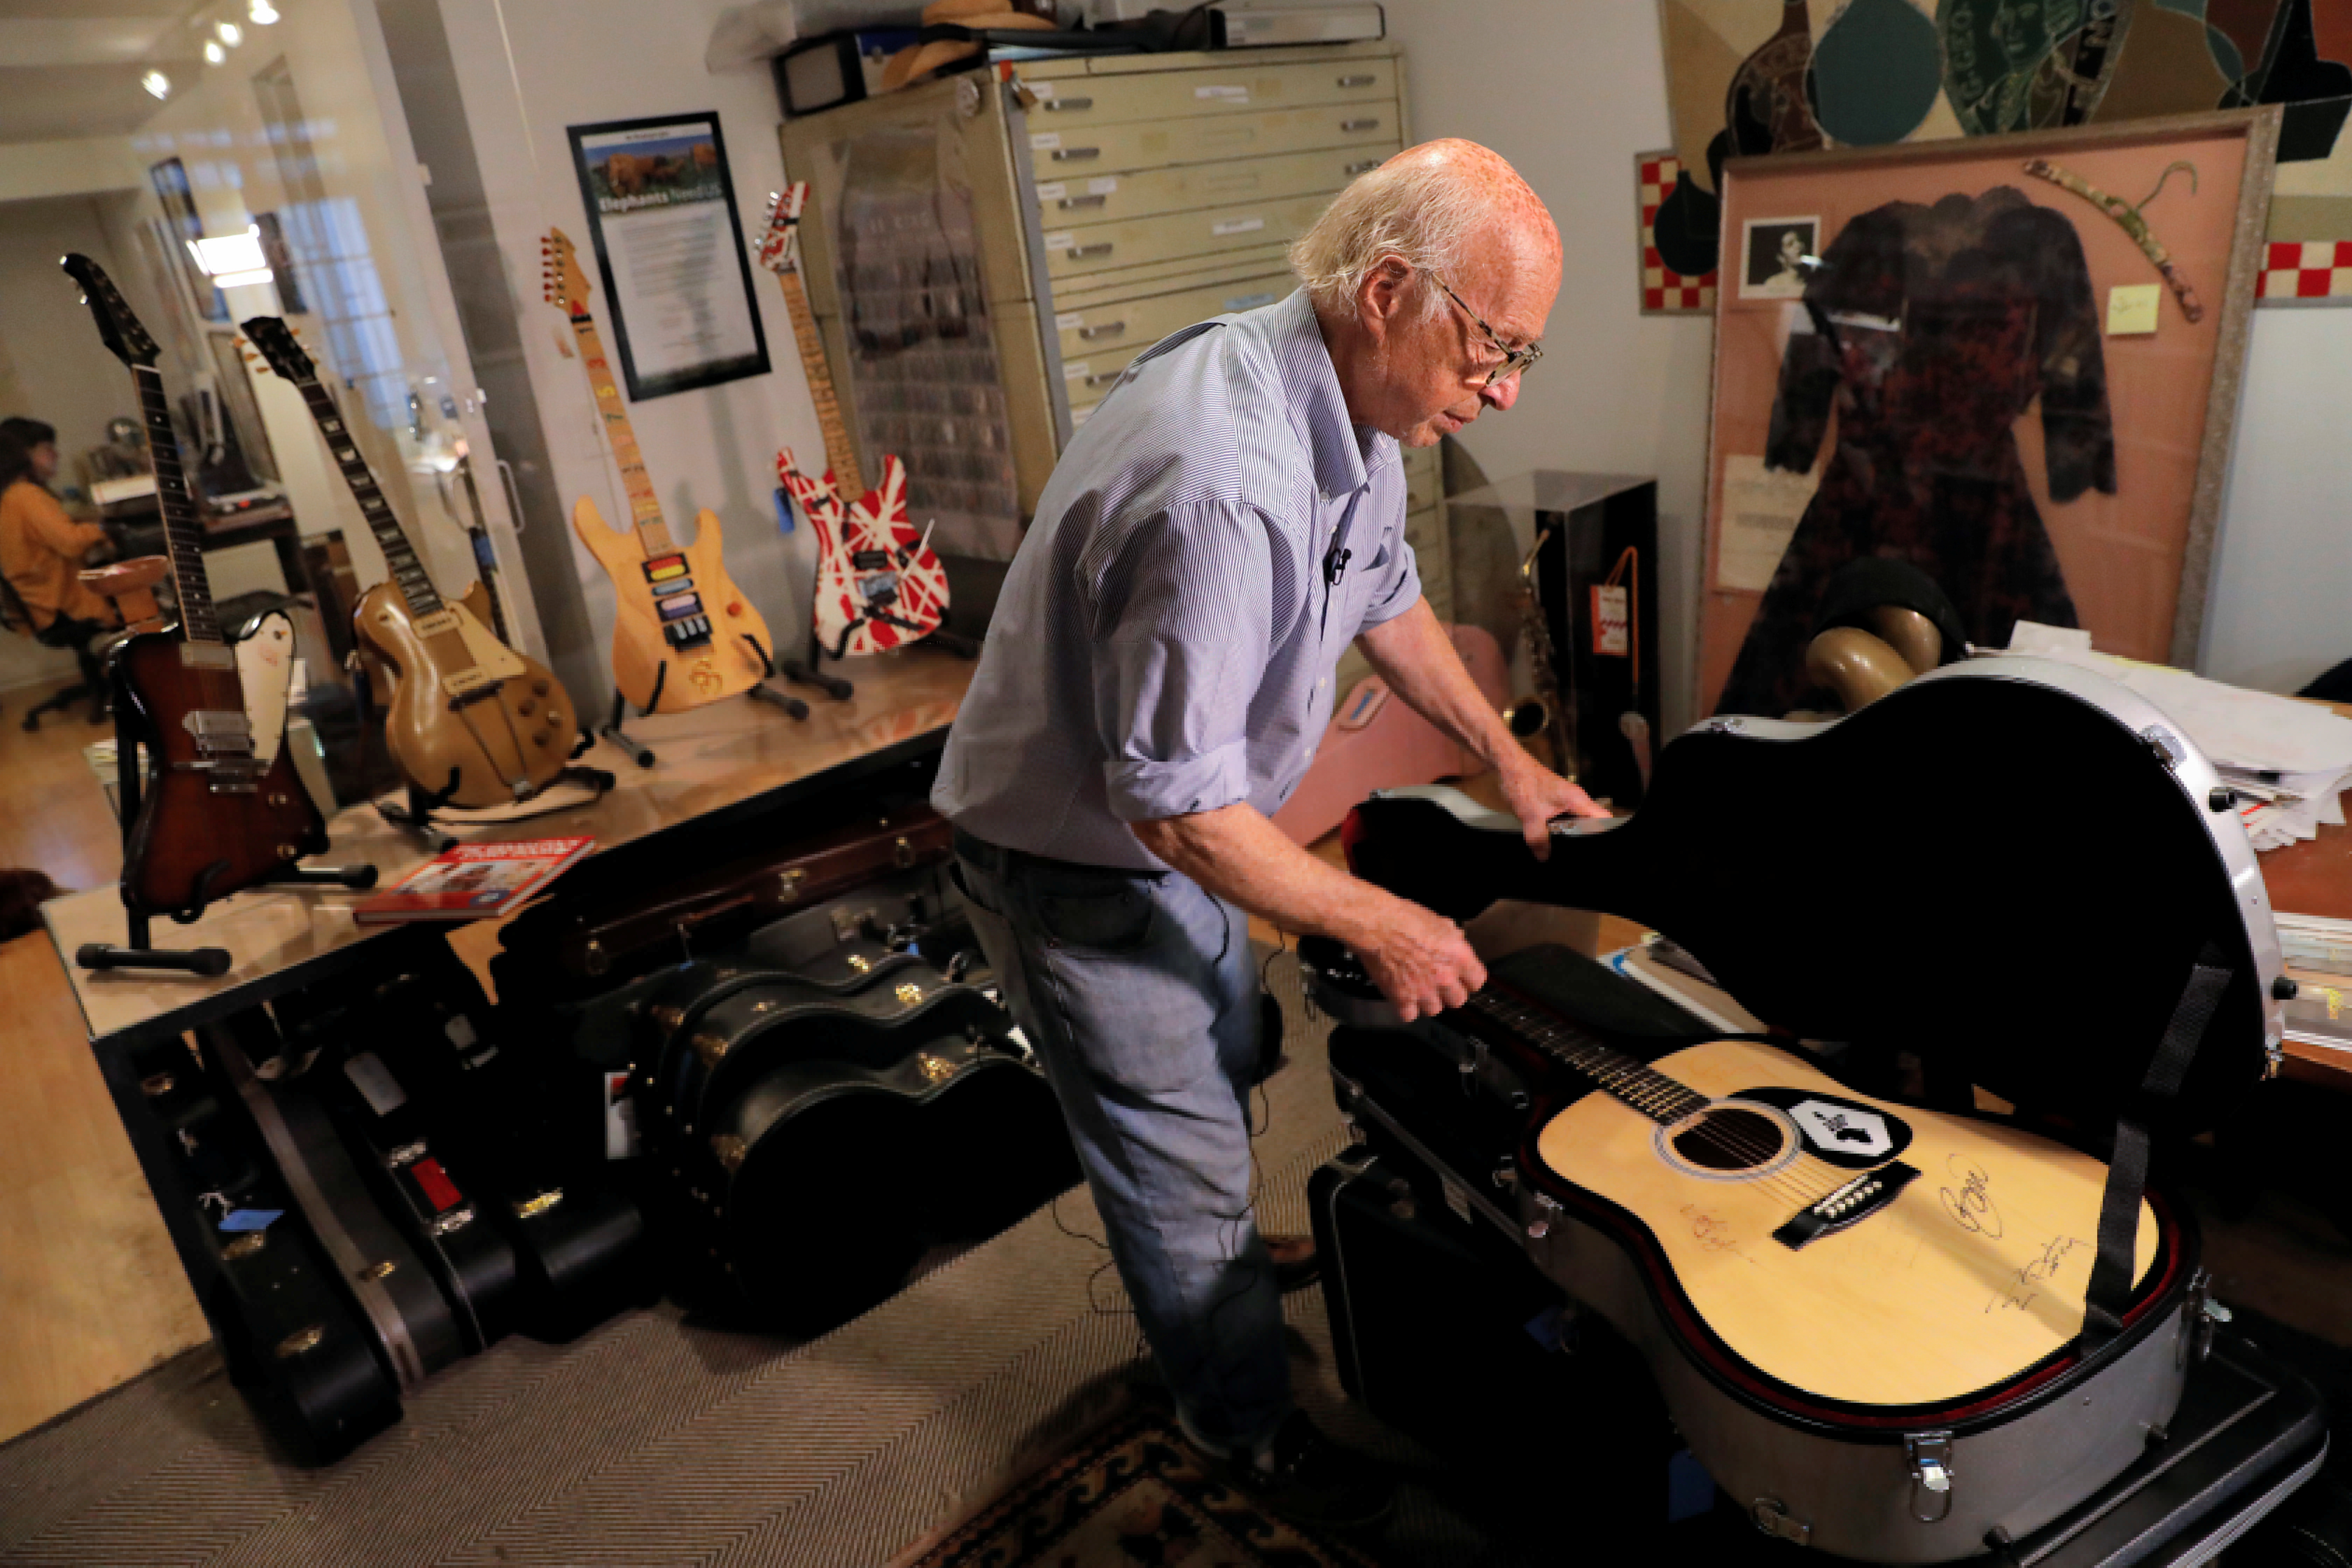 Arlan Ettinger, president and founder of Guernsey's auction house, displays a Live Aid guitar signed by Bob Geldof, Tom Petty, Bob Dylan, Bono and Sting among others ahead of their